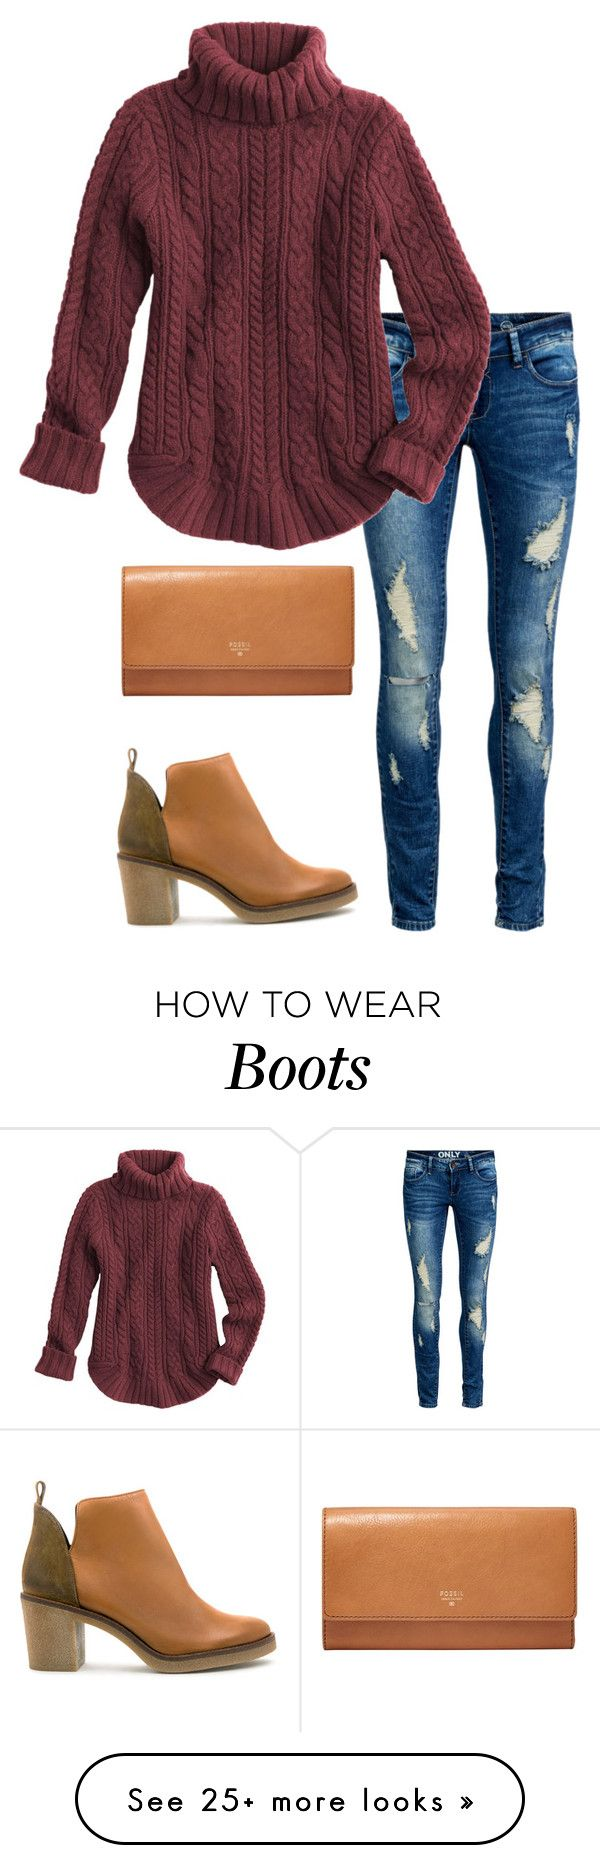 """""""Cute boots"""" by thepinkcatapillar on Polyvore featuring ONLY, FOSSIL and Miista"""